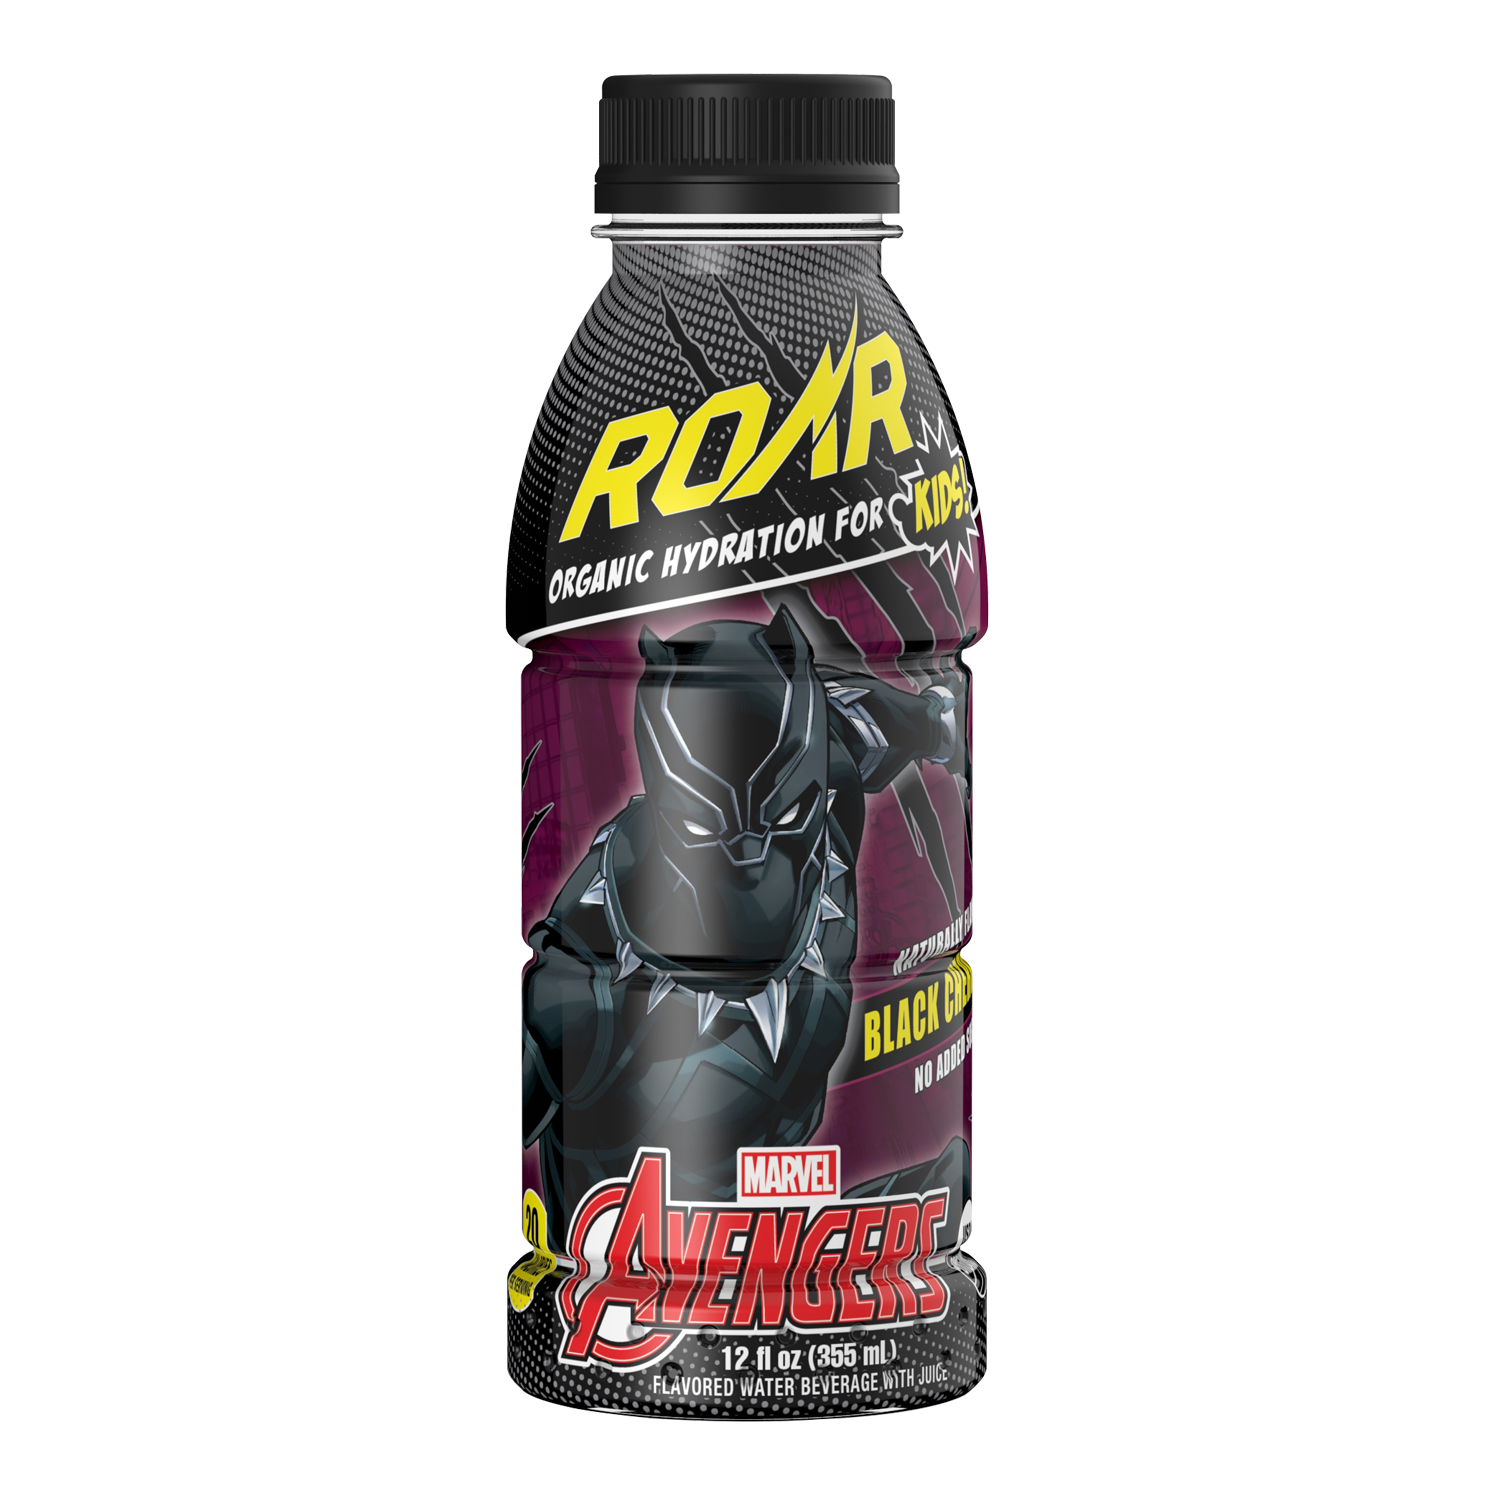 ROAR Black Panther Kids Juice, Black Cherry, 12 Fl Oz, 12 Ct